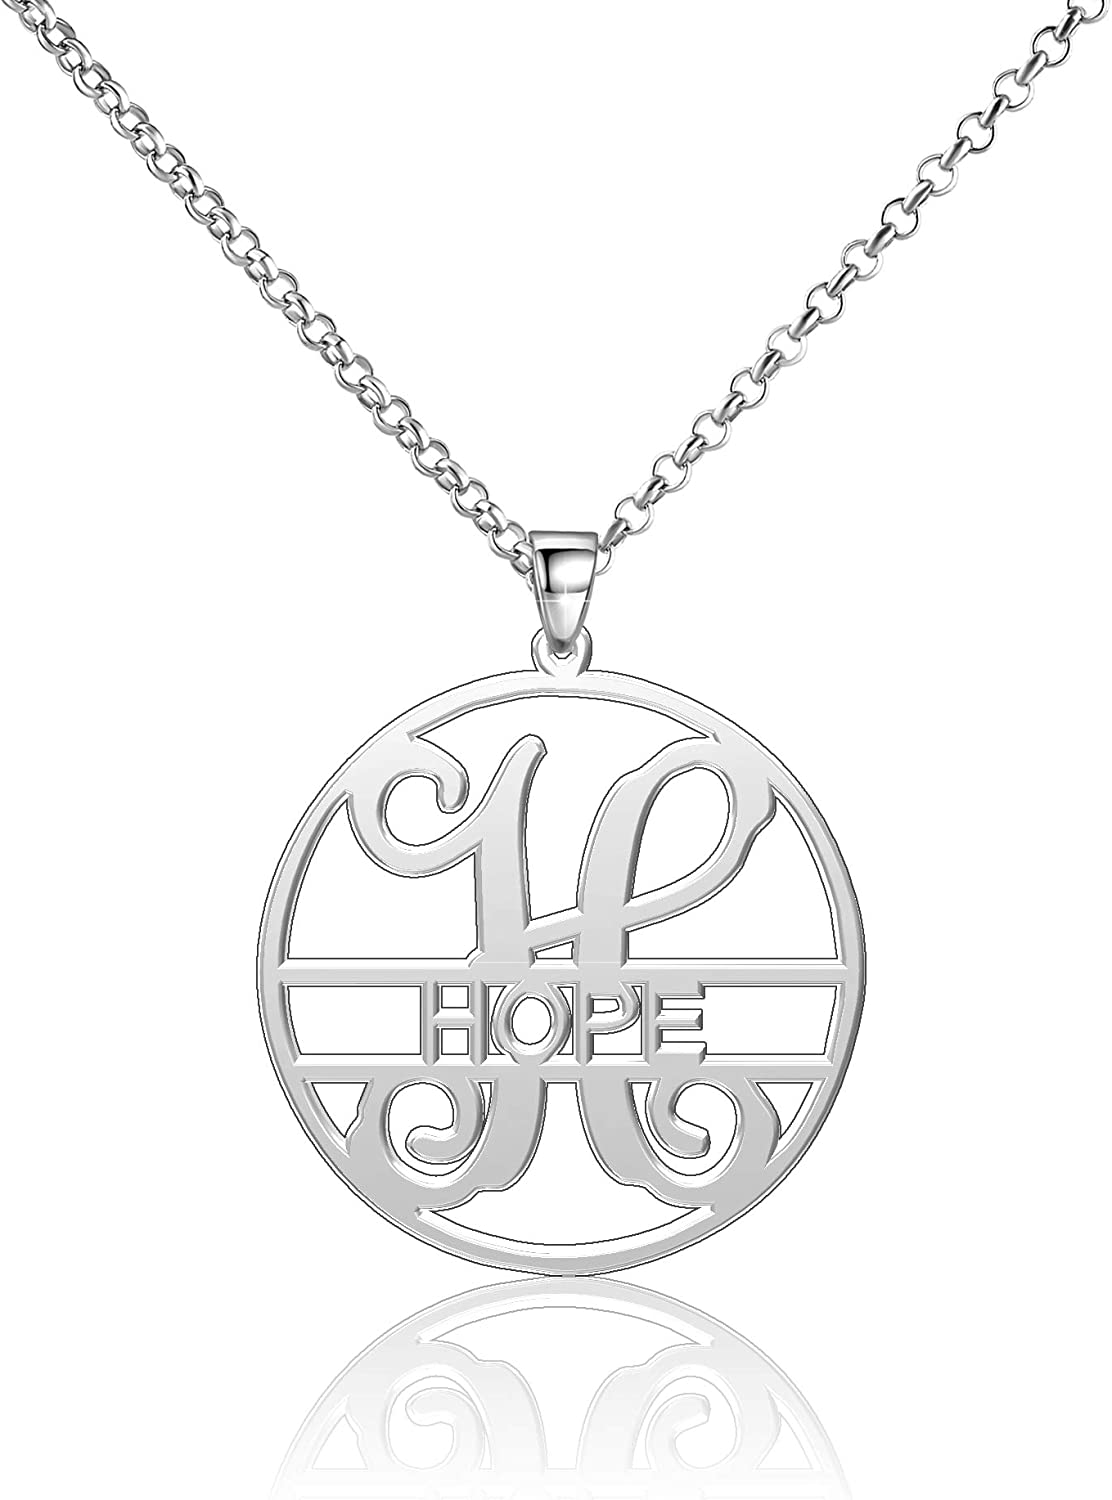 Moonlight Collections Heart Name Necklace Personalized Gifts Sterling Silver Customized Initial Pendant Chain